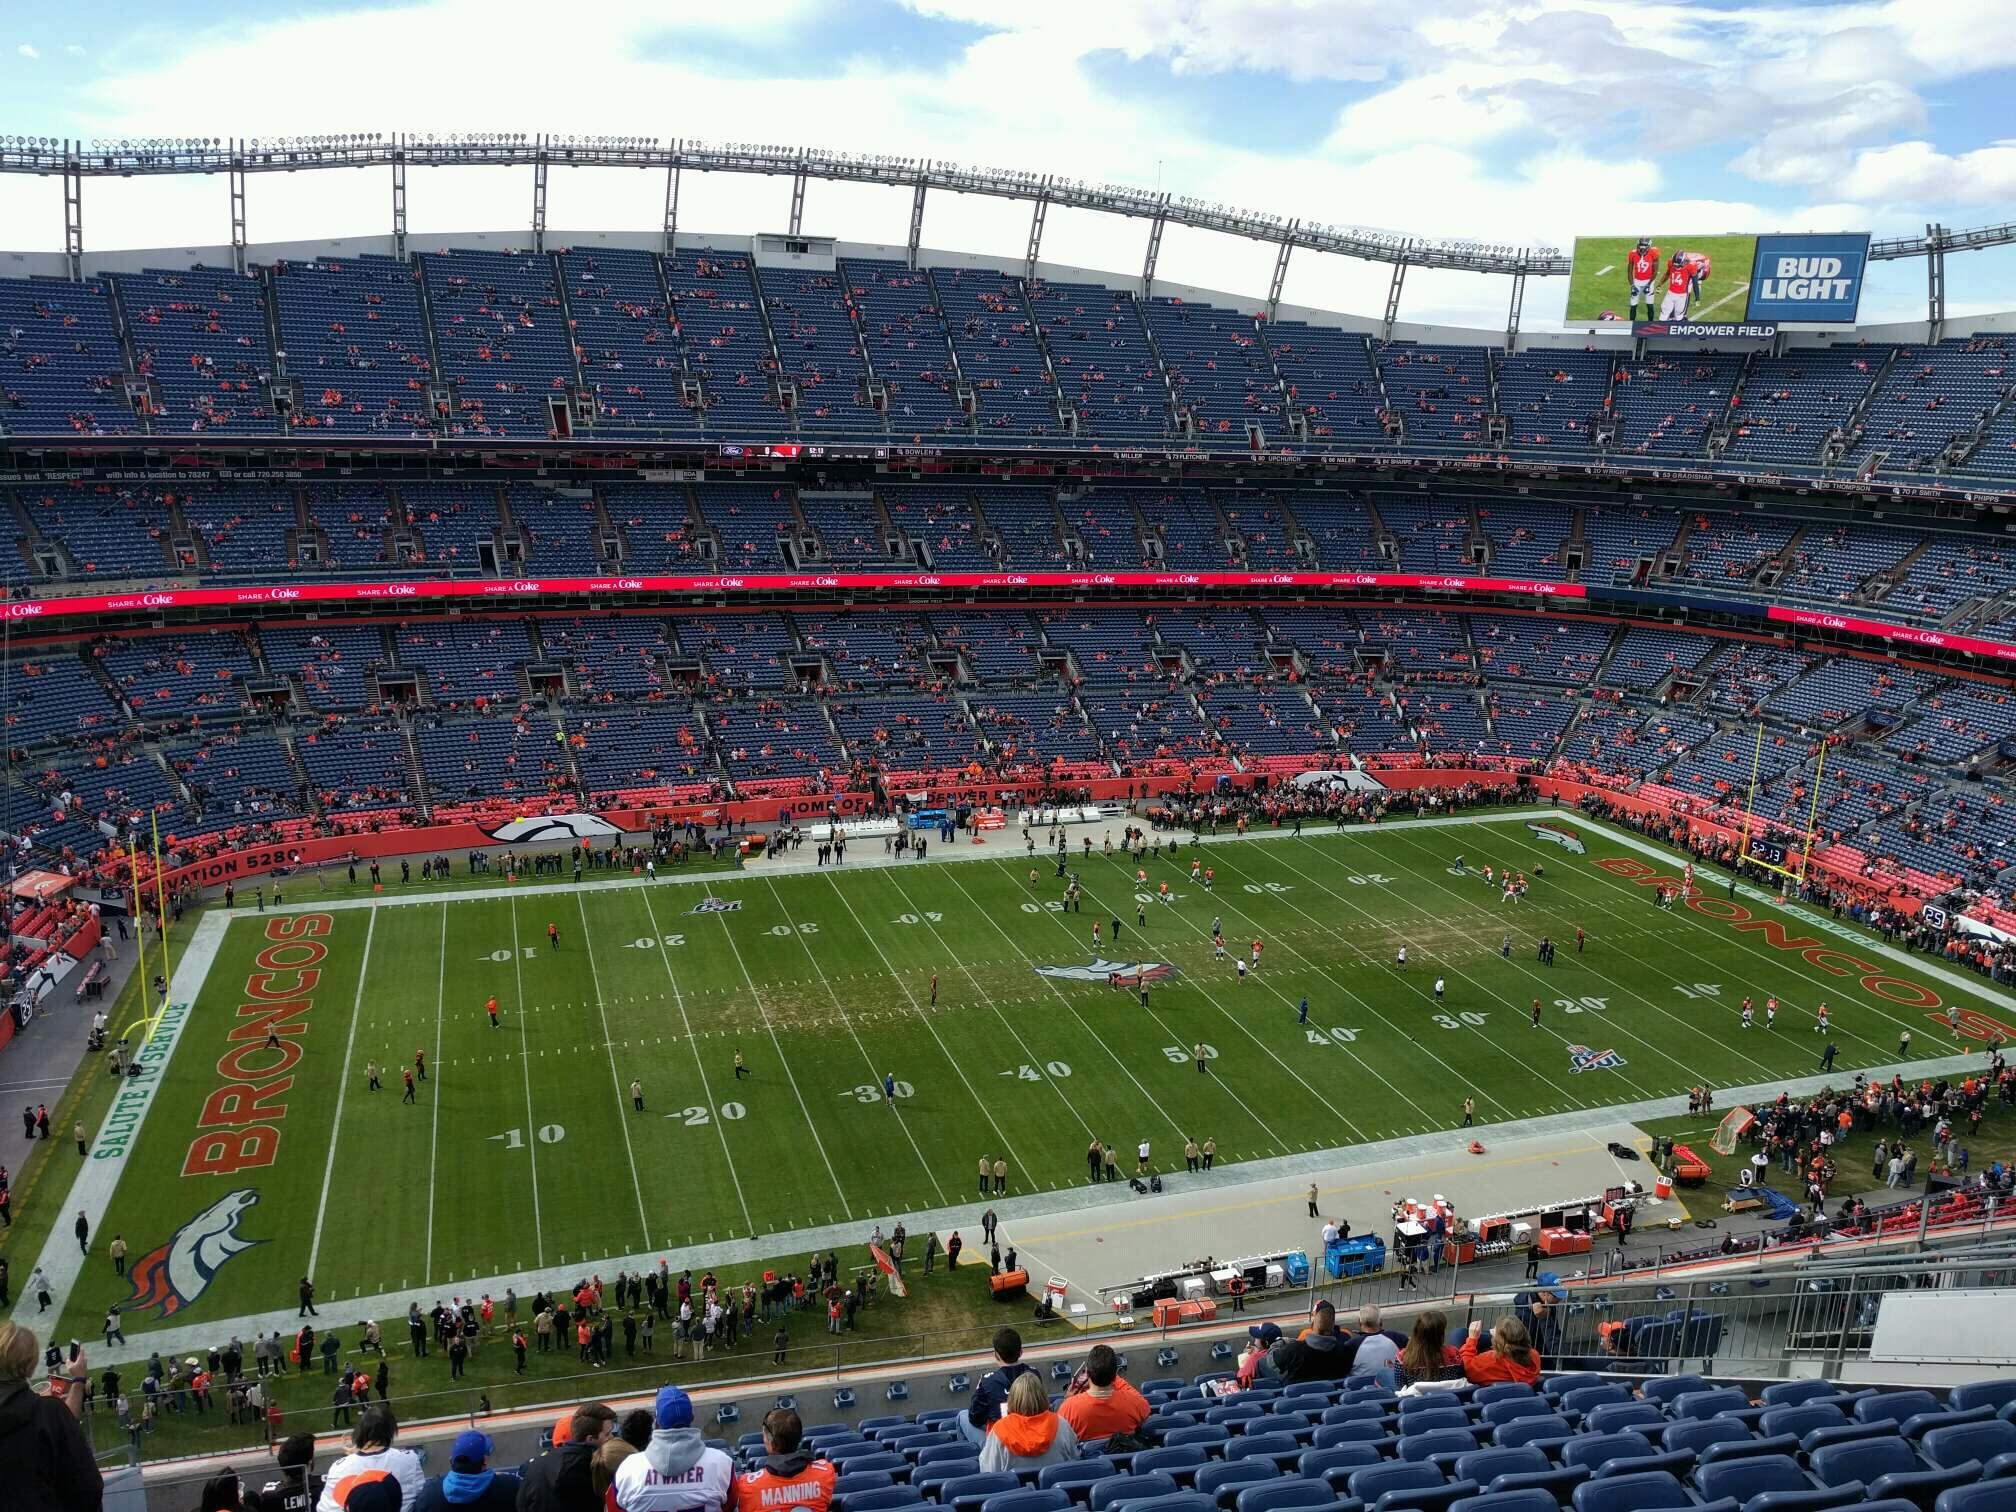 Empower Field at Mile High Stadium Section 537 Row 14 Seat 21